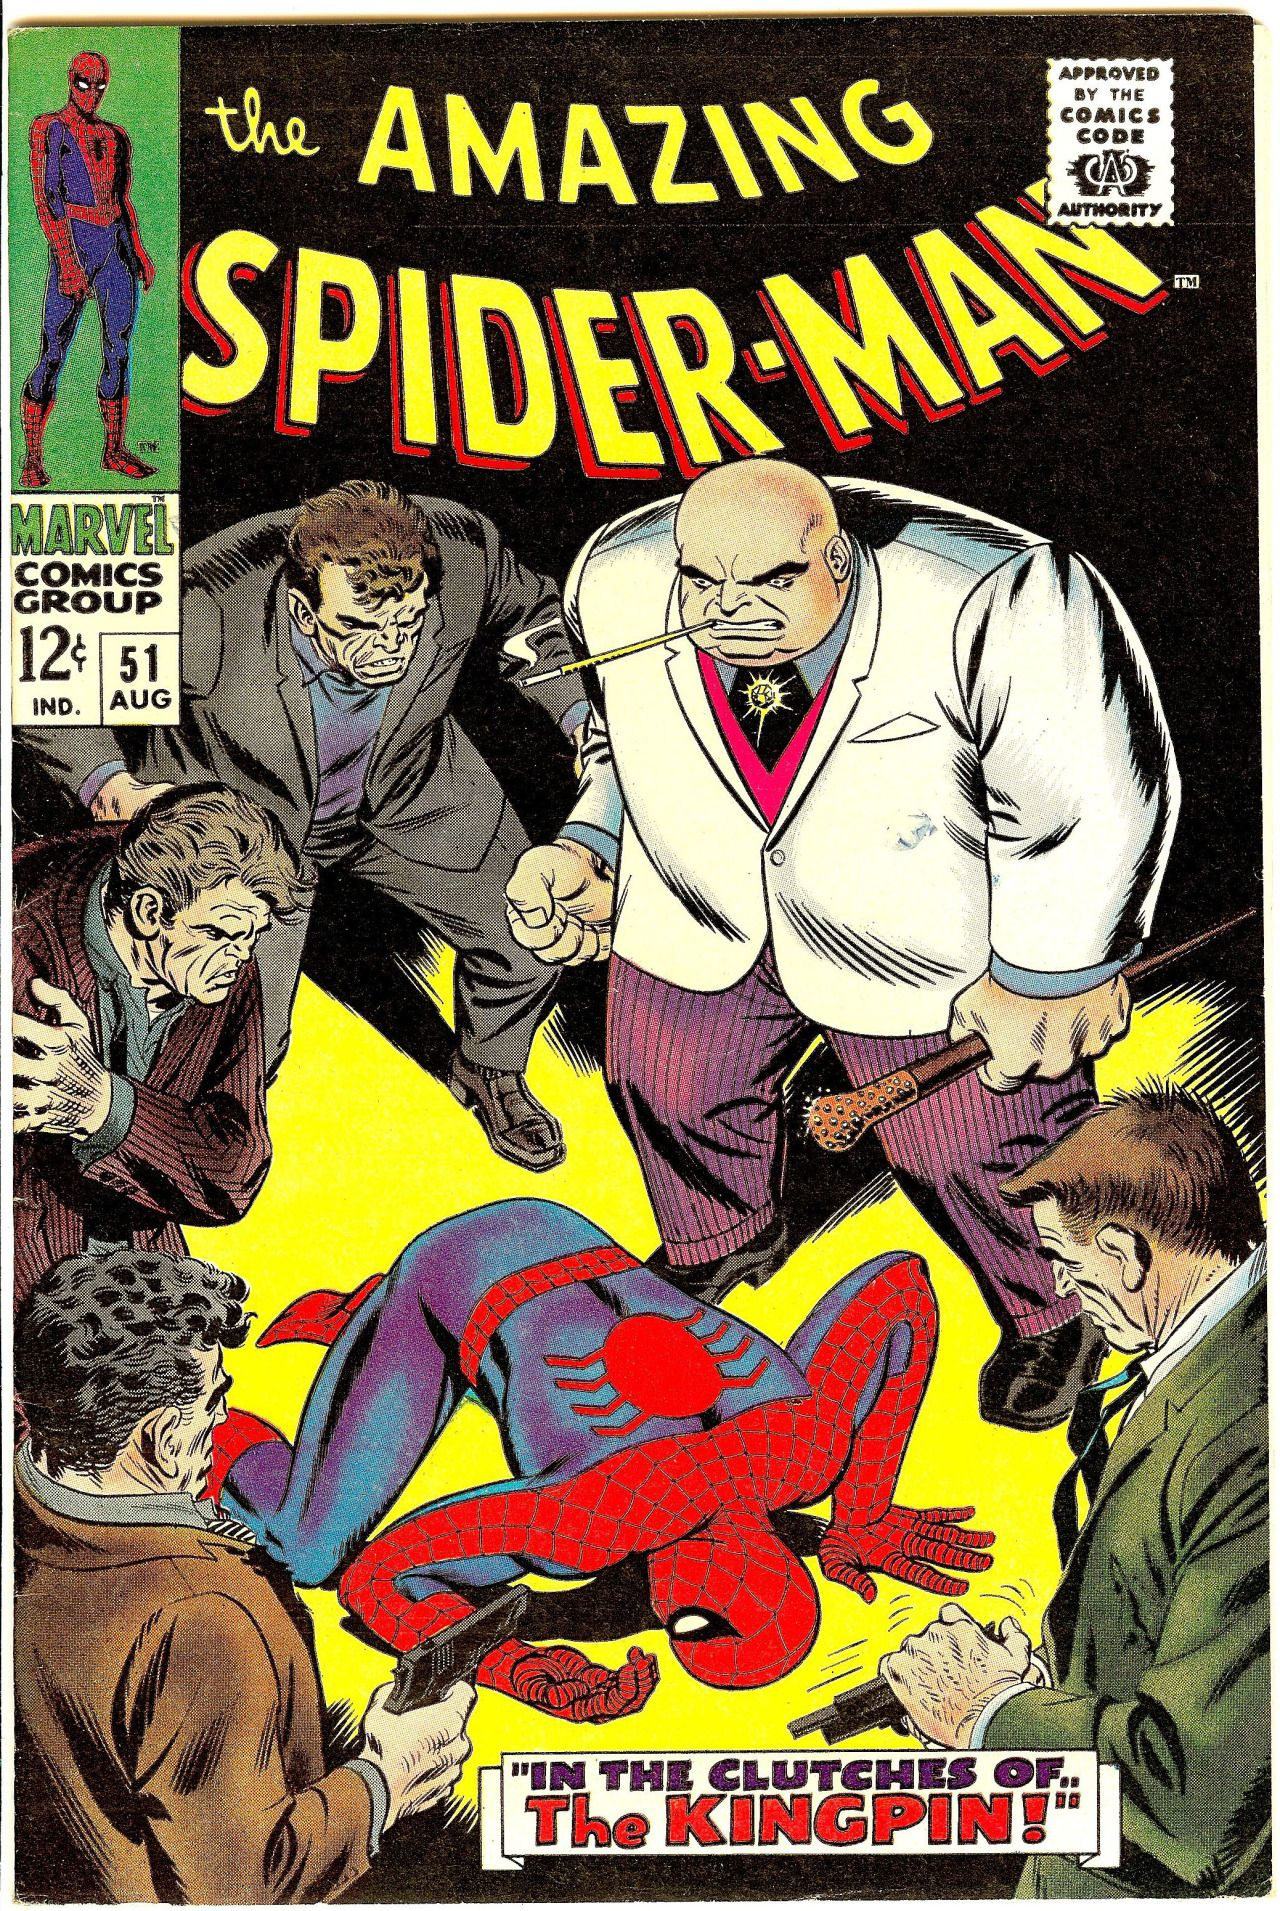 The Amazing Spider-Man #51